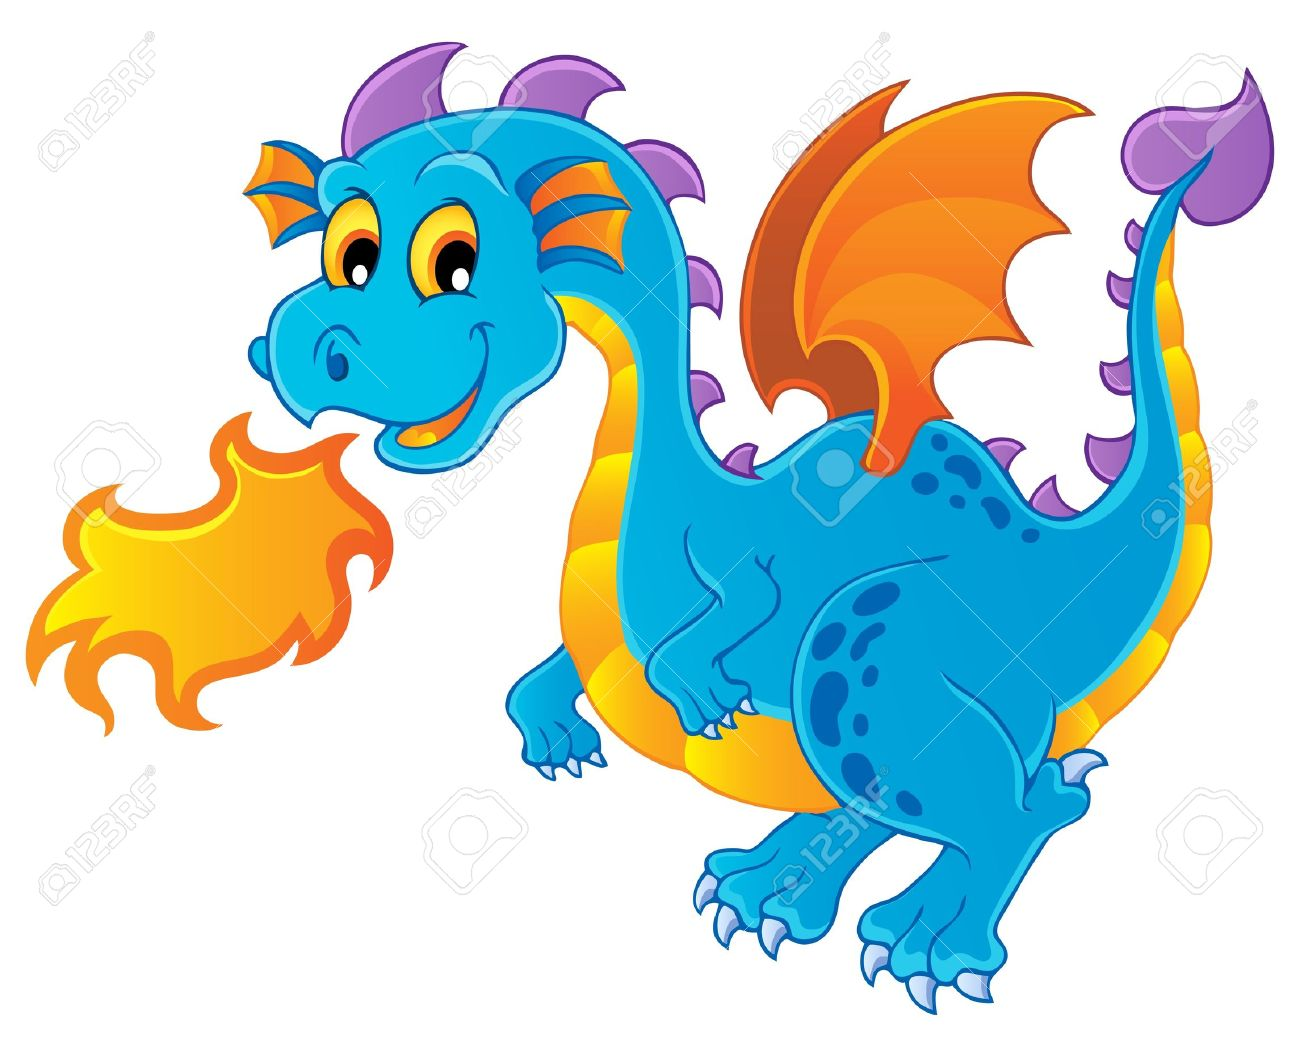 hight resolution of dragon theme image 4 vector illustration stock vector 15045940